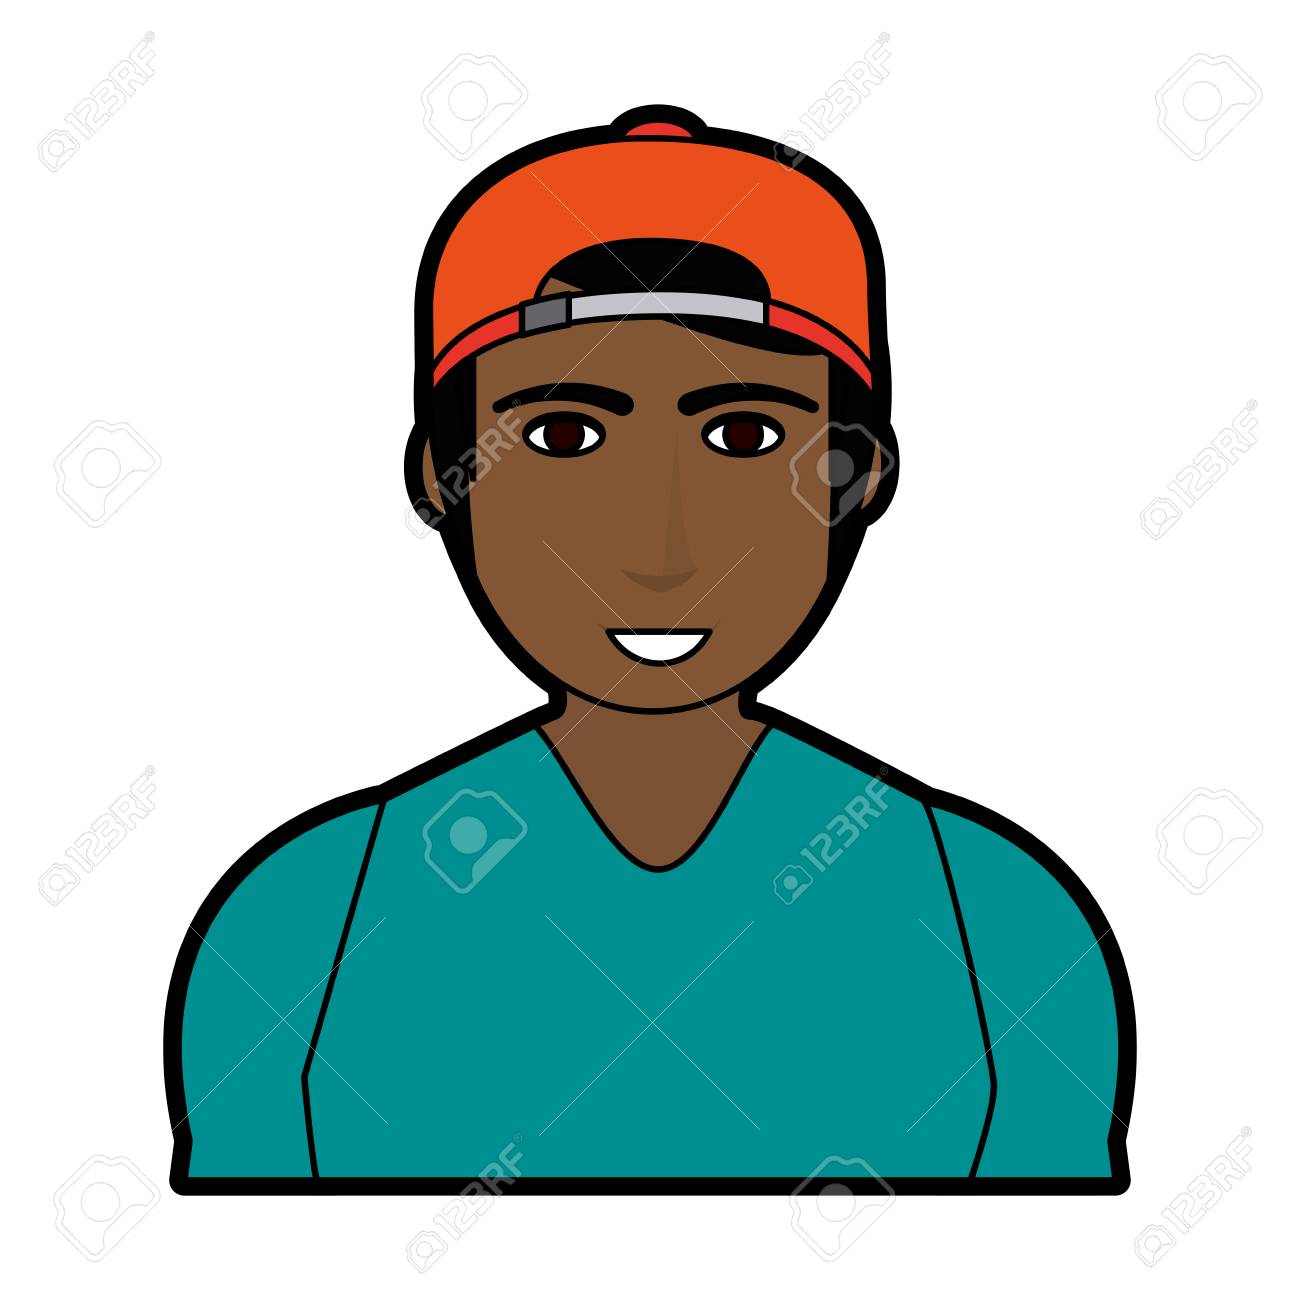 d1f280e321f398 ... reduced handsome man with muscular body wearing backwards baseball hat  icon image vector illustration design stock